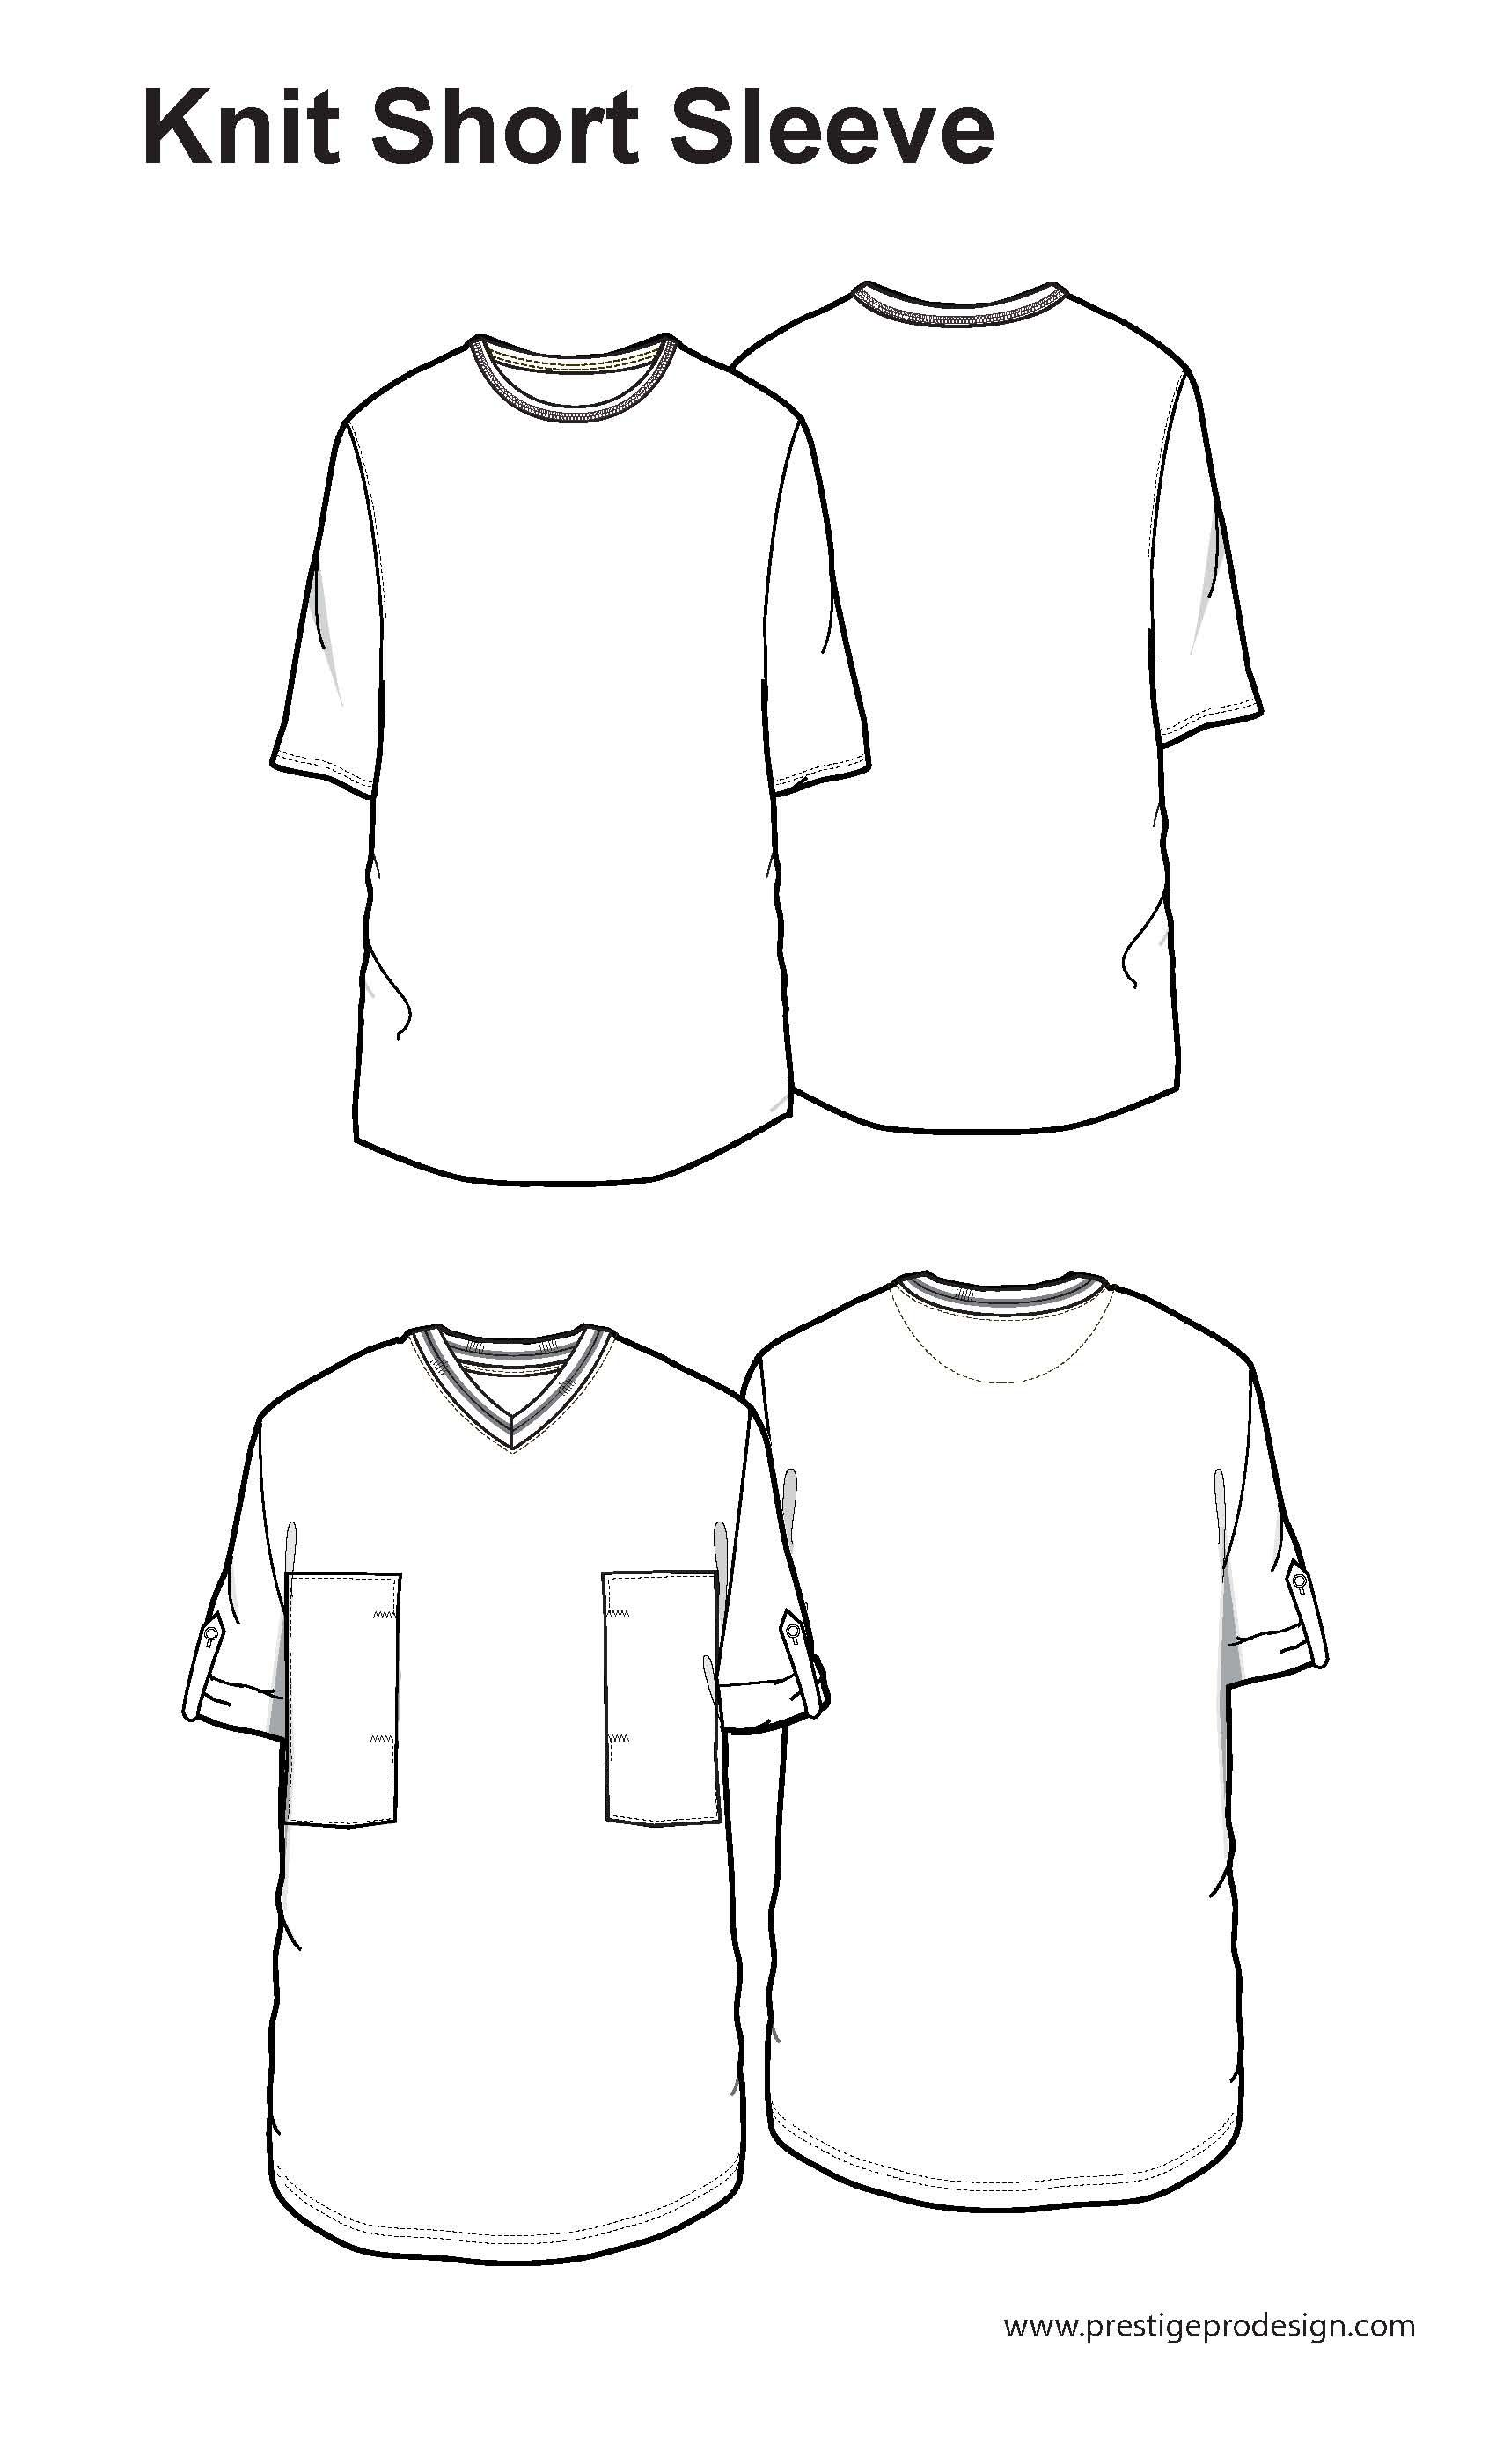 Short sleeve man flat sketches pinterest short sleeves shorts